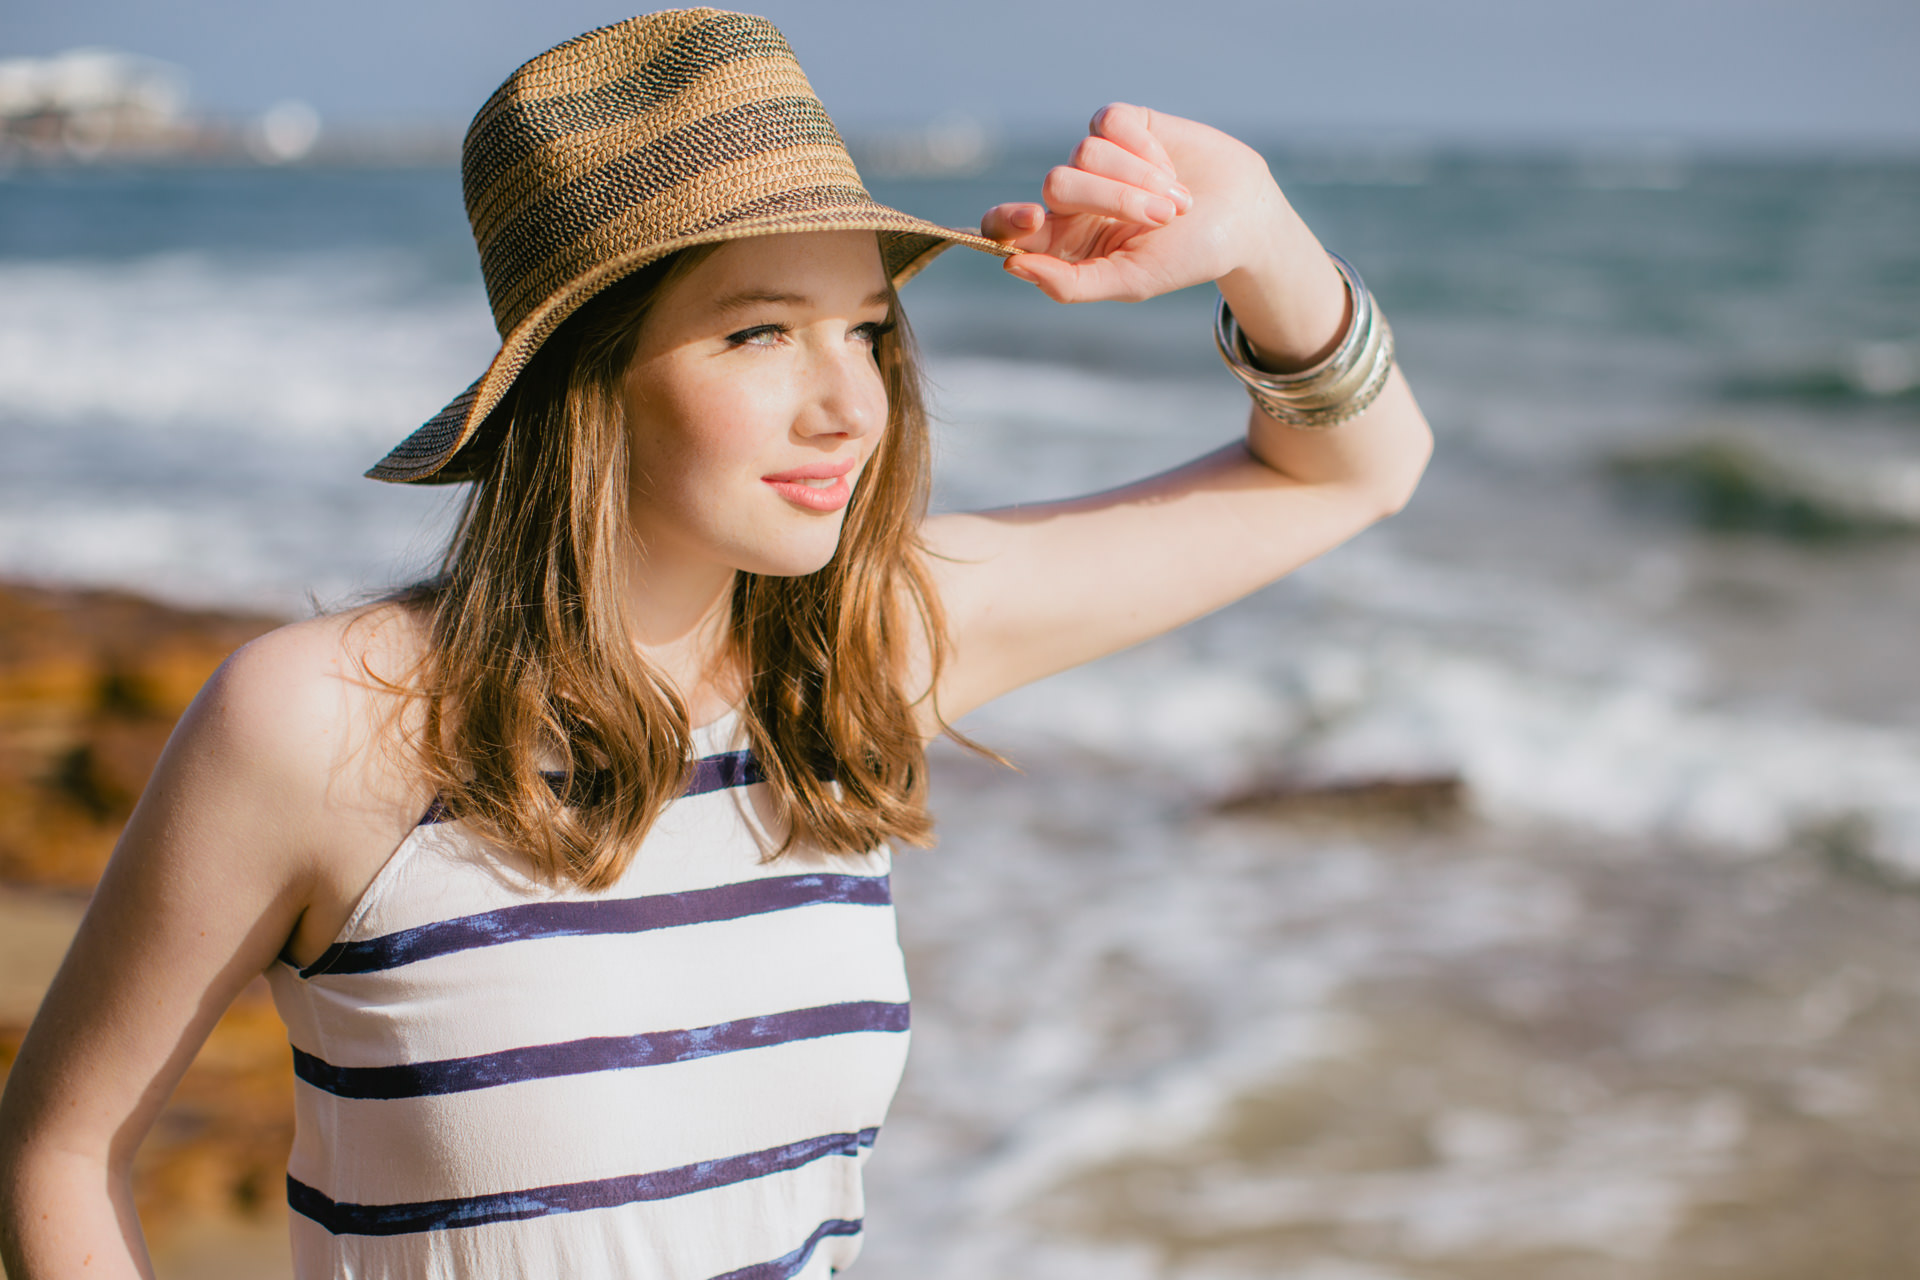 summer portrait of girl wearing sunhat